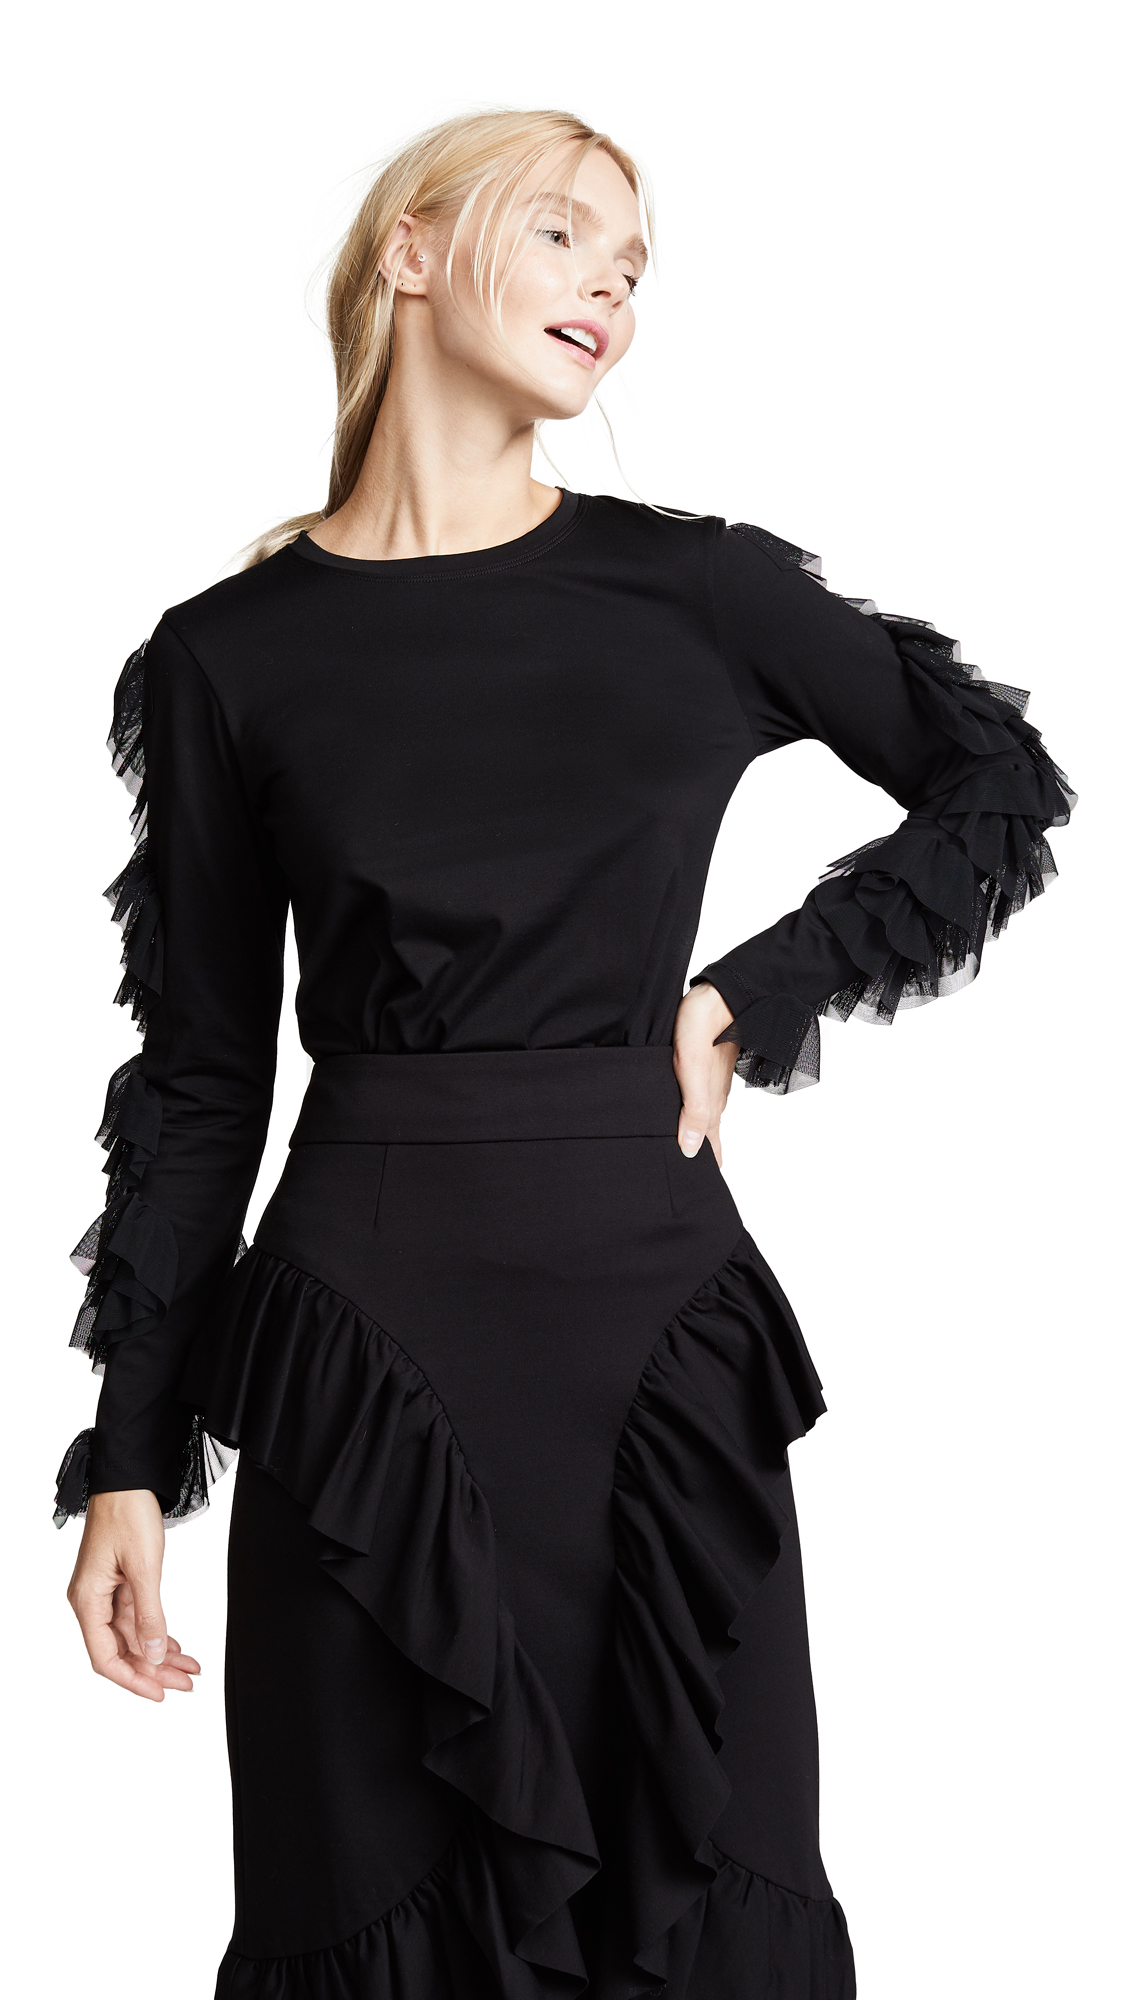 RHIE Ruffle Sleeve Top In Black